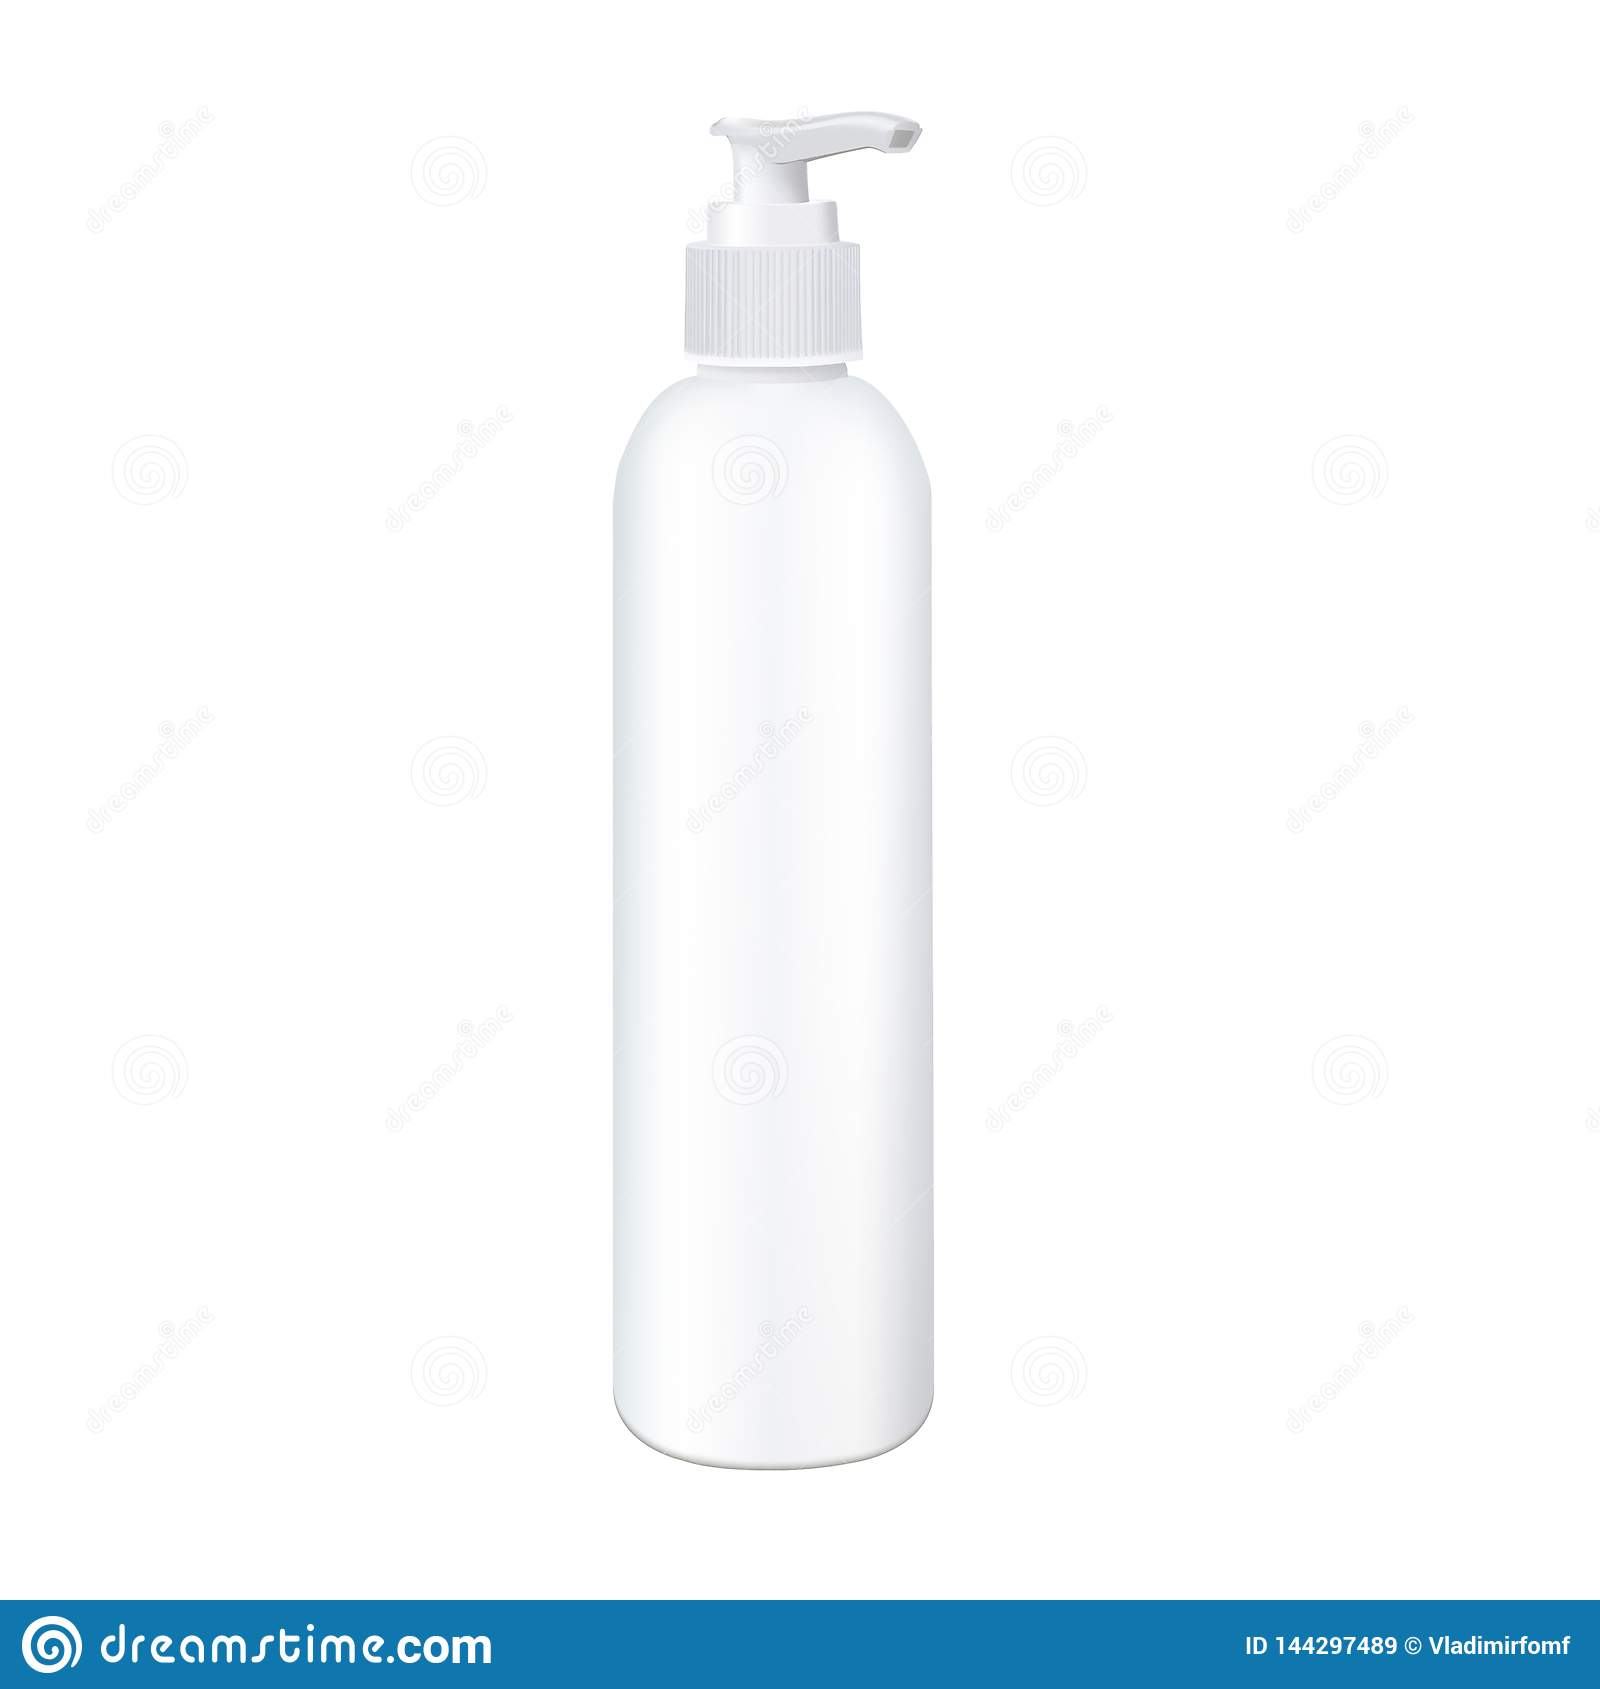 Pump head bottle. Photorealistic vector mockup ready for product design